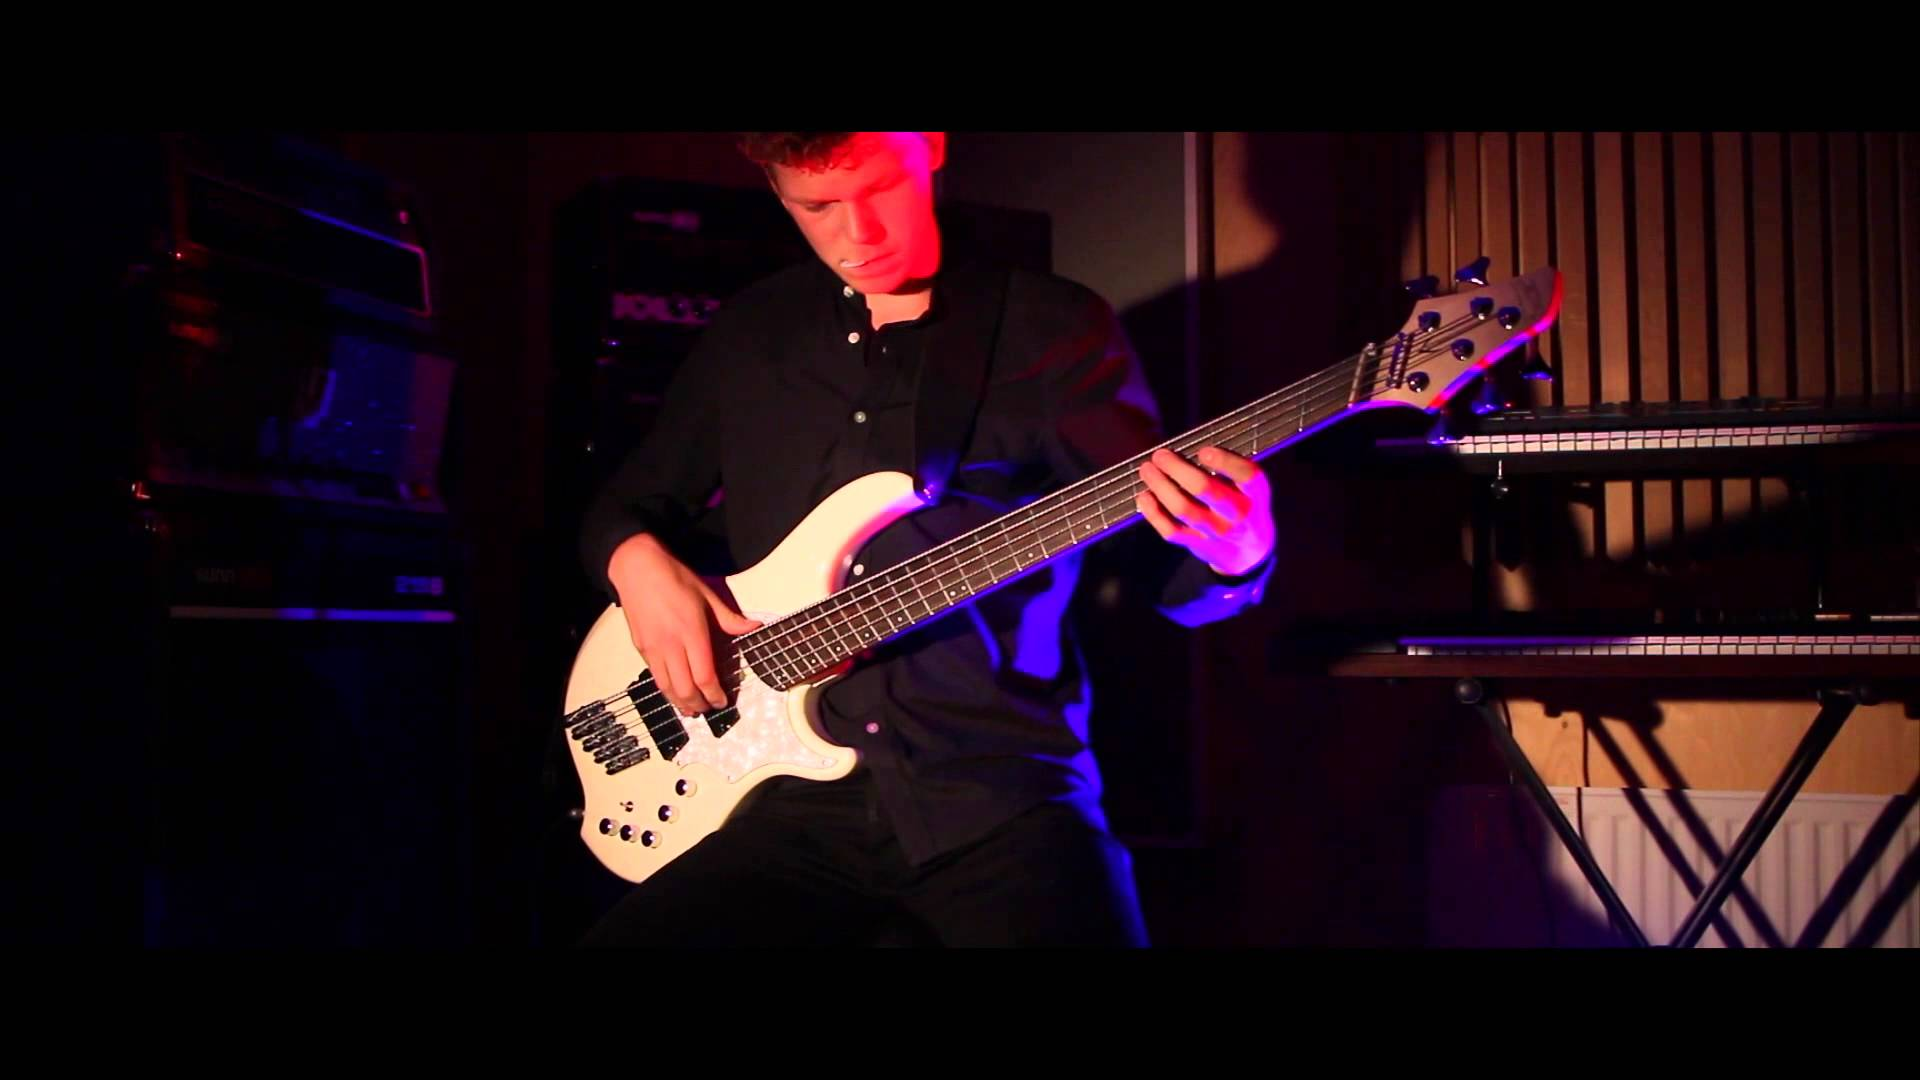 The Great Discord 'A Discordant Call' (Rasmus Carlson - Bass Playthrough)